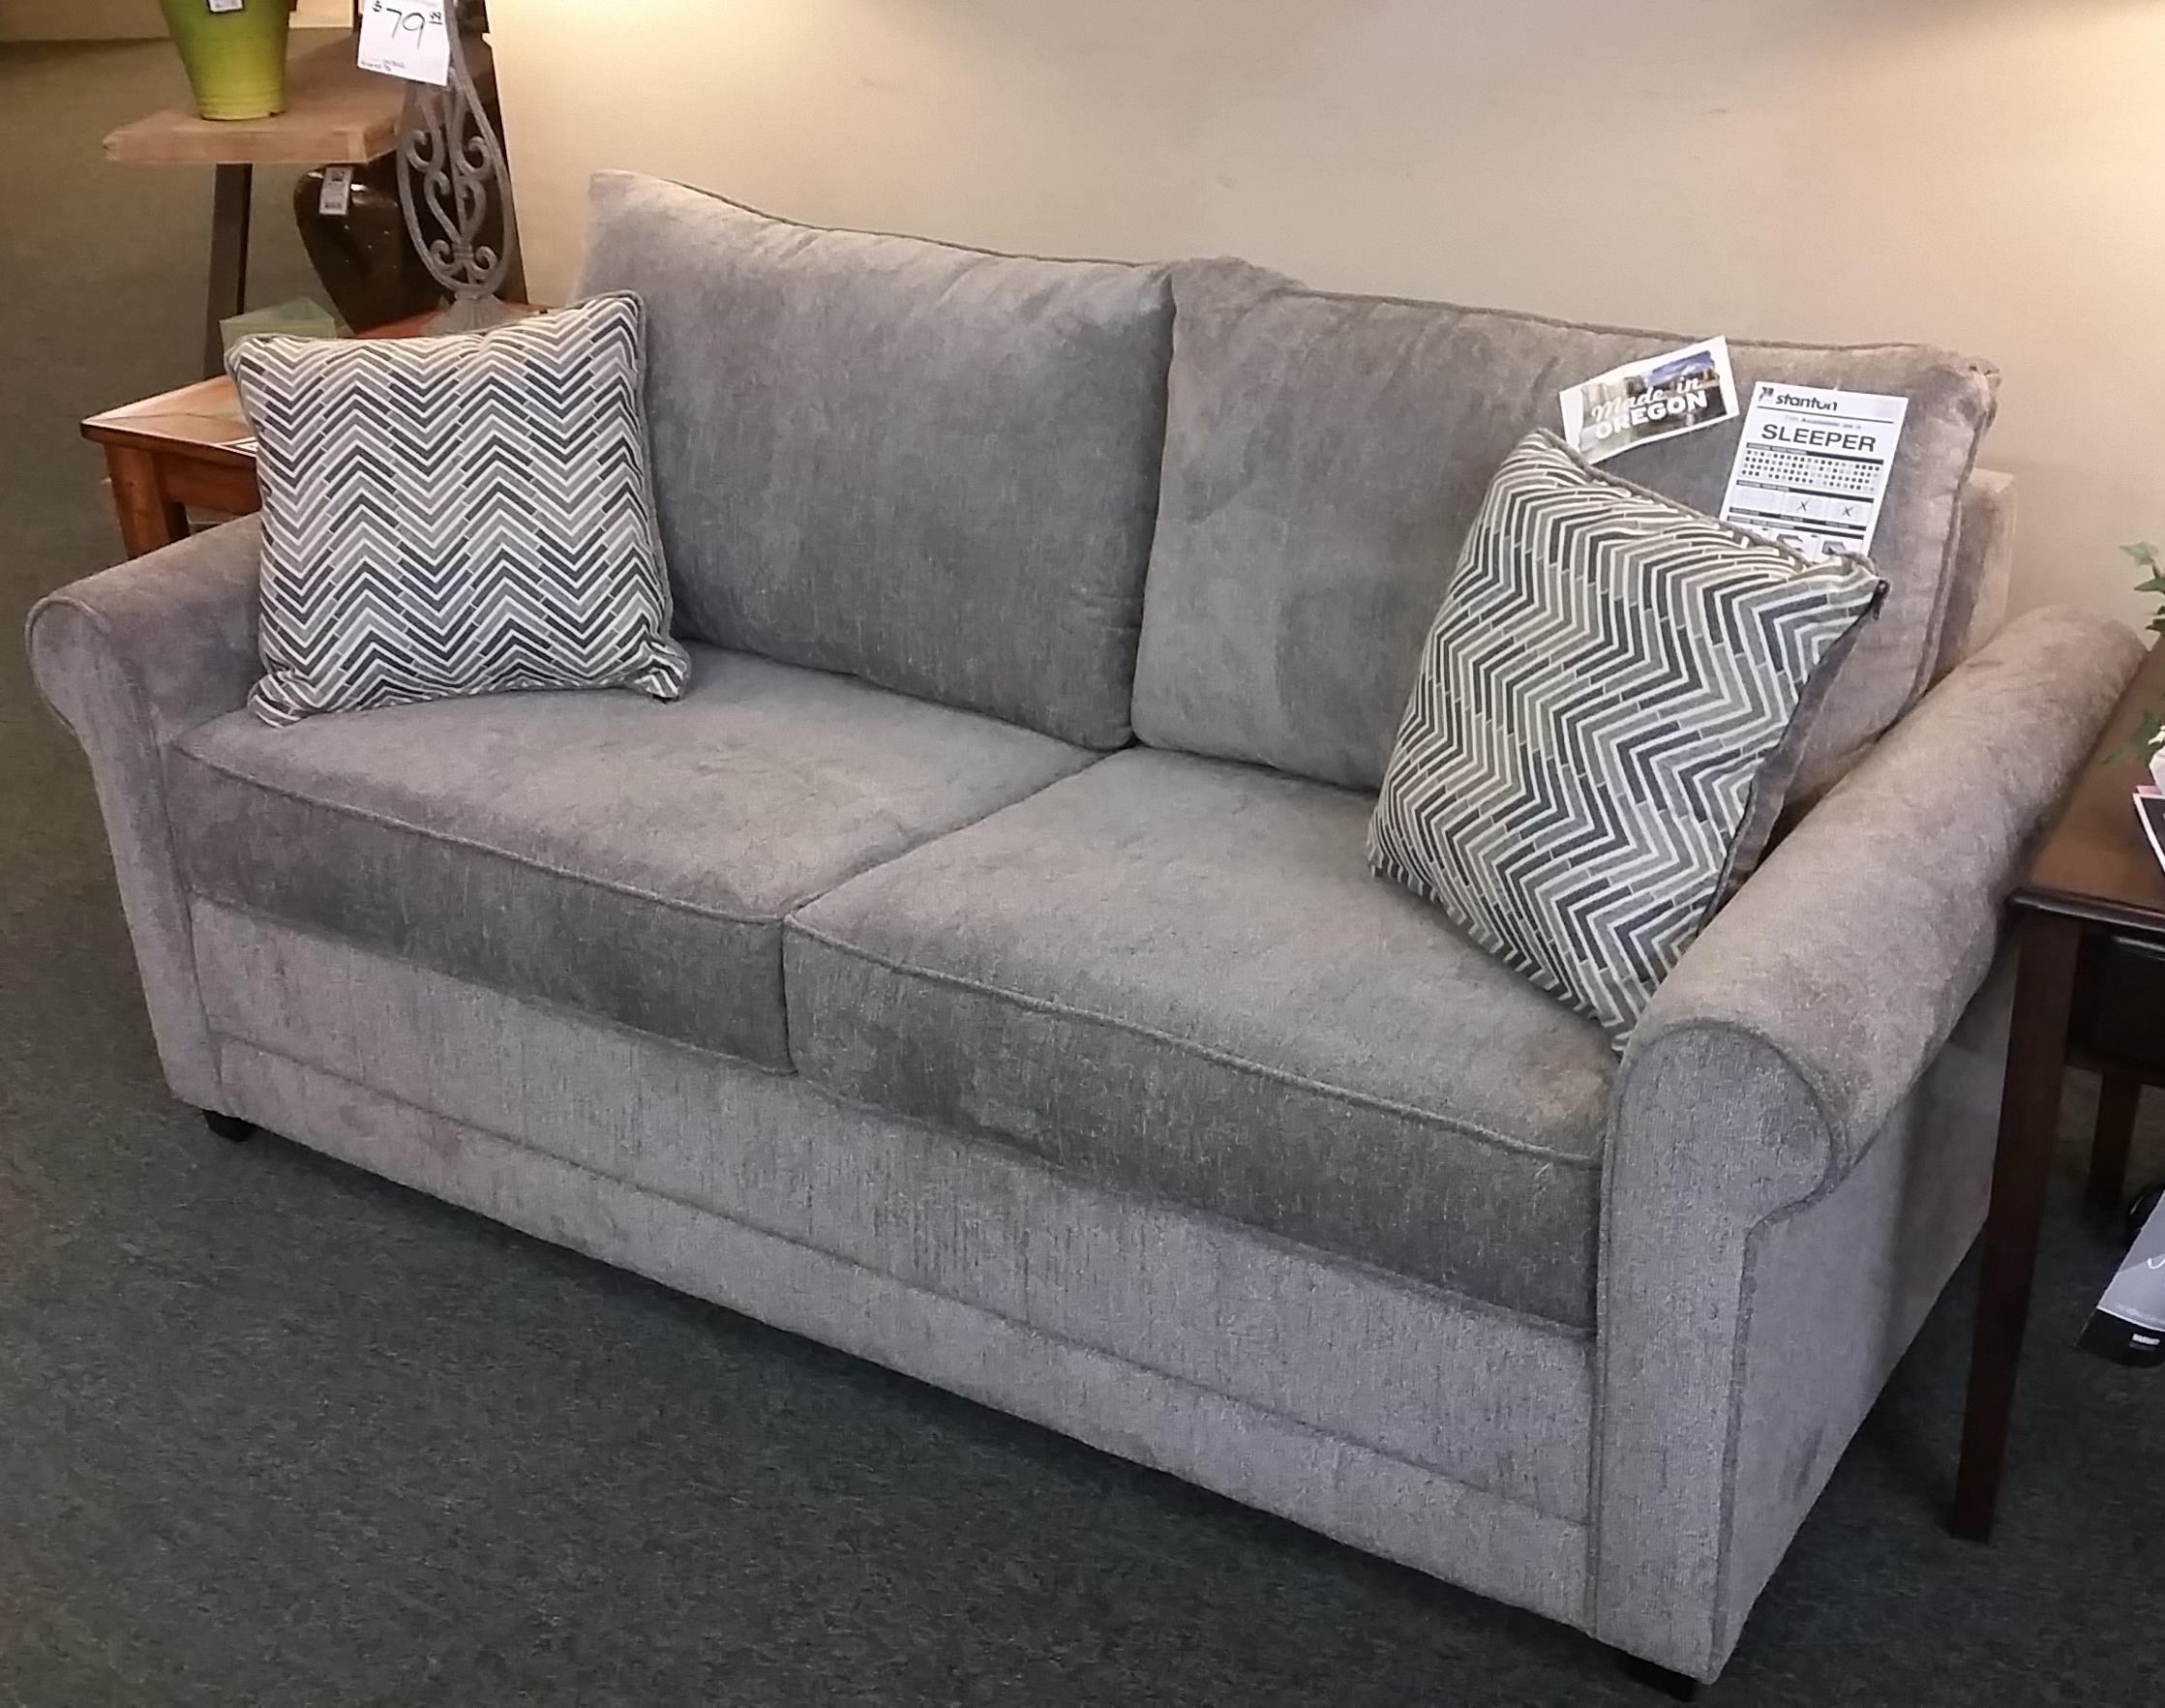 Stanton 202 Full Sleeper Sofa w/ Basic Mattress - Item Number: 202-14B